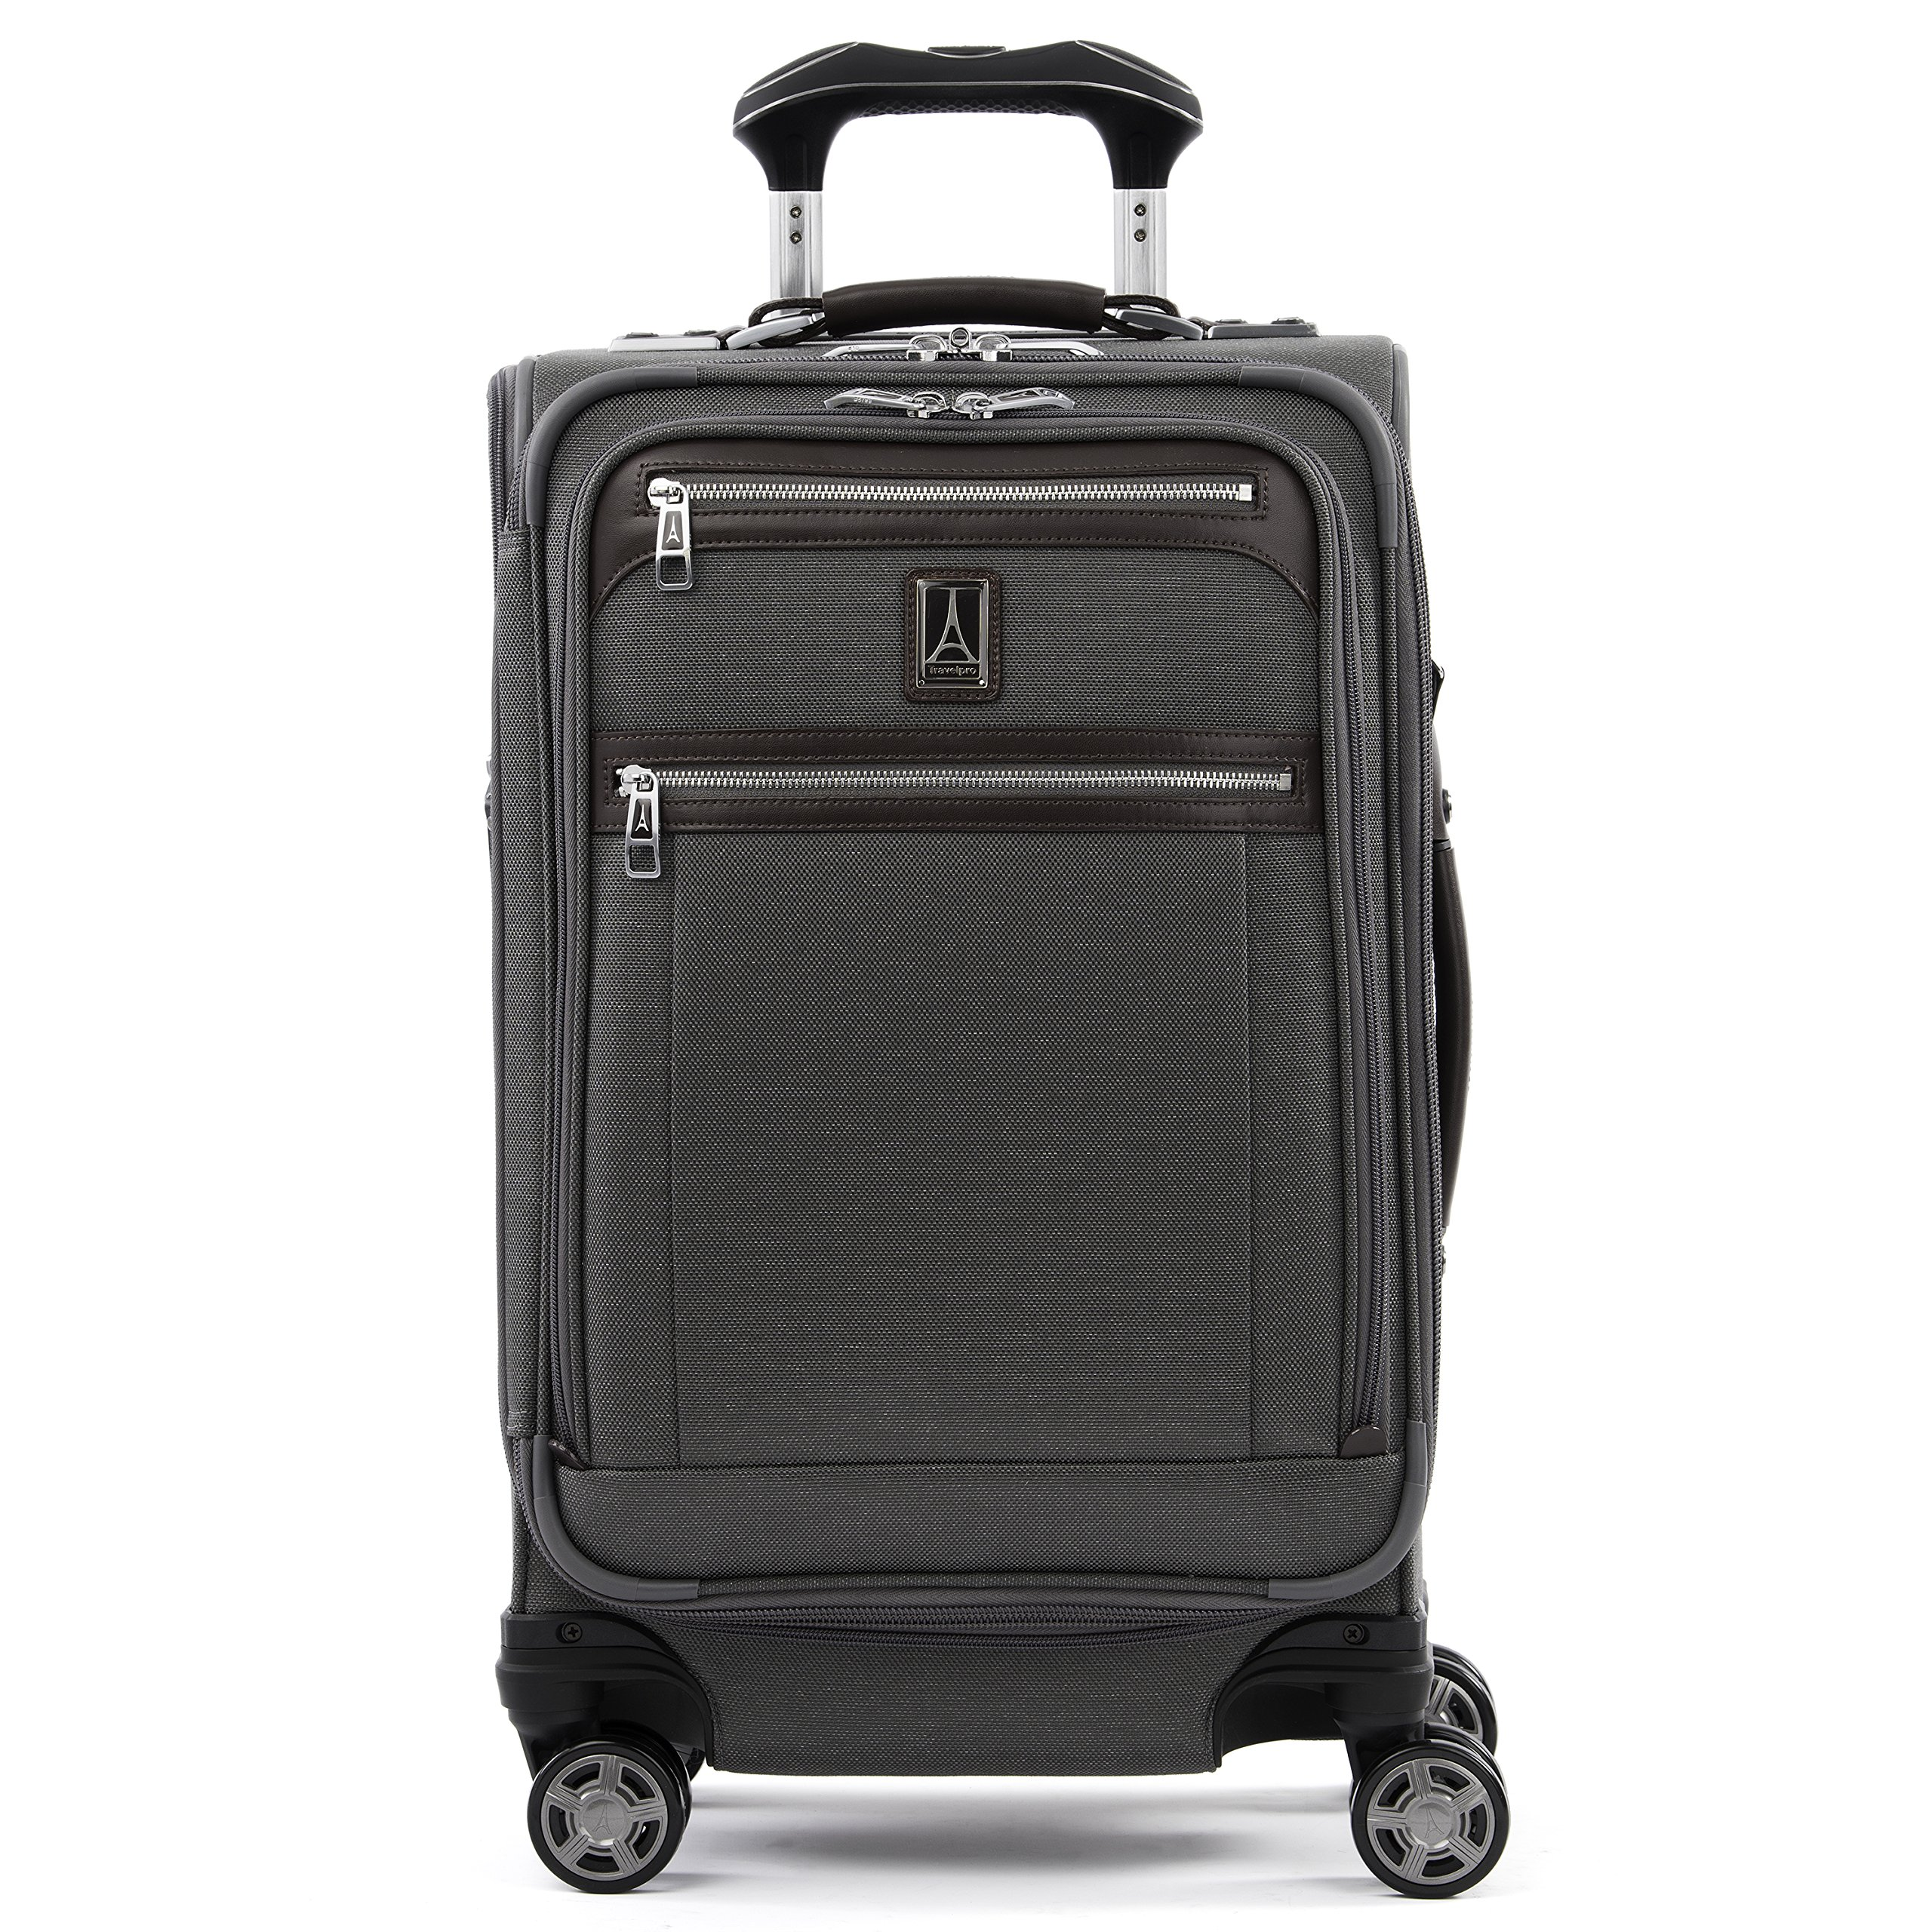 Travelpro Luggage Platinum Elite 21'' Expandable Carry-On Spinner, Vintage Grey